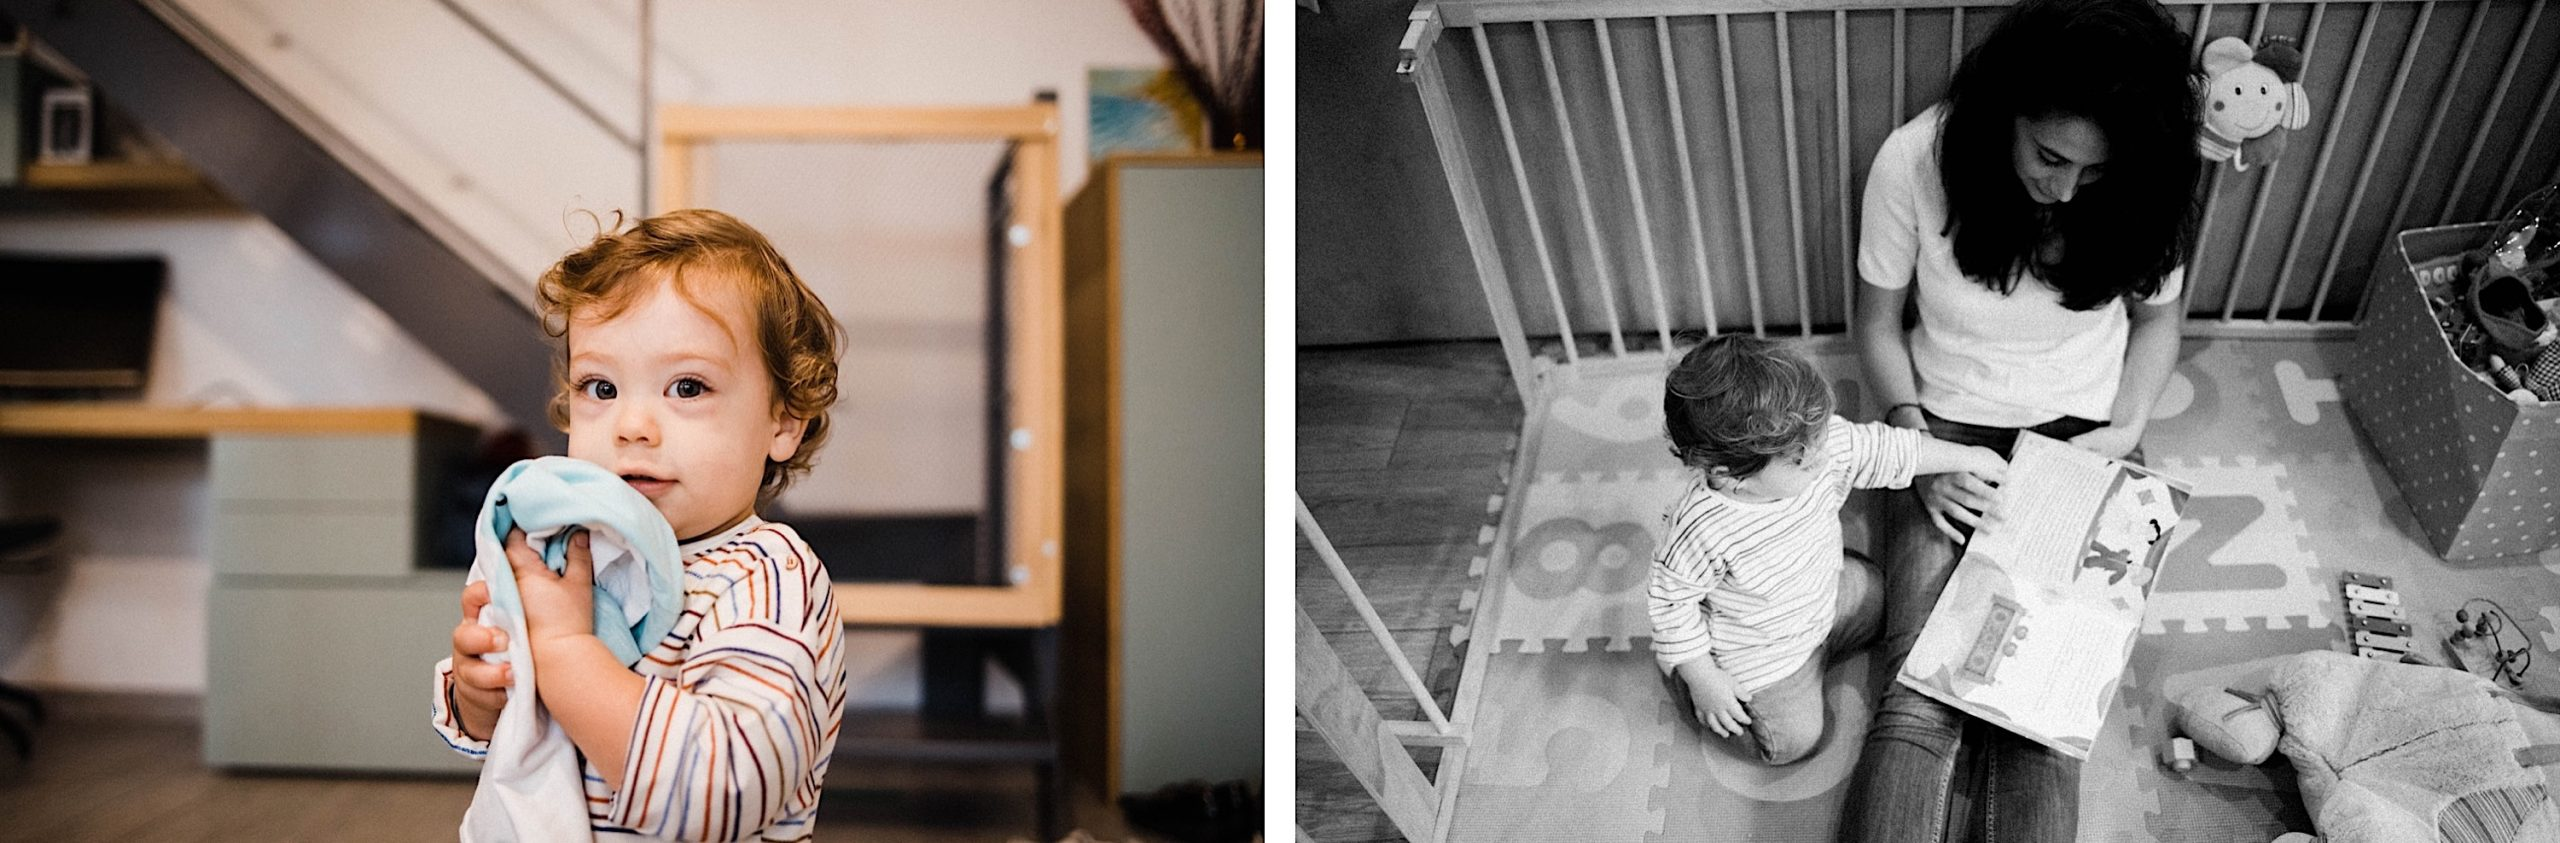 Portraits of a little boy and his Mum reading together during their In-Home Family Photography Session in Milan.